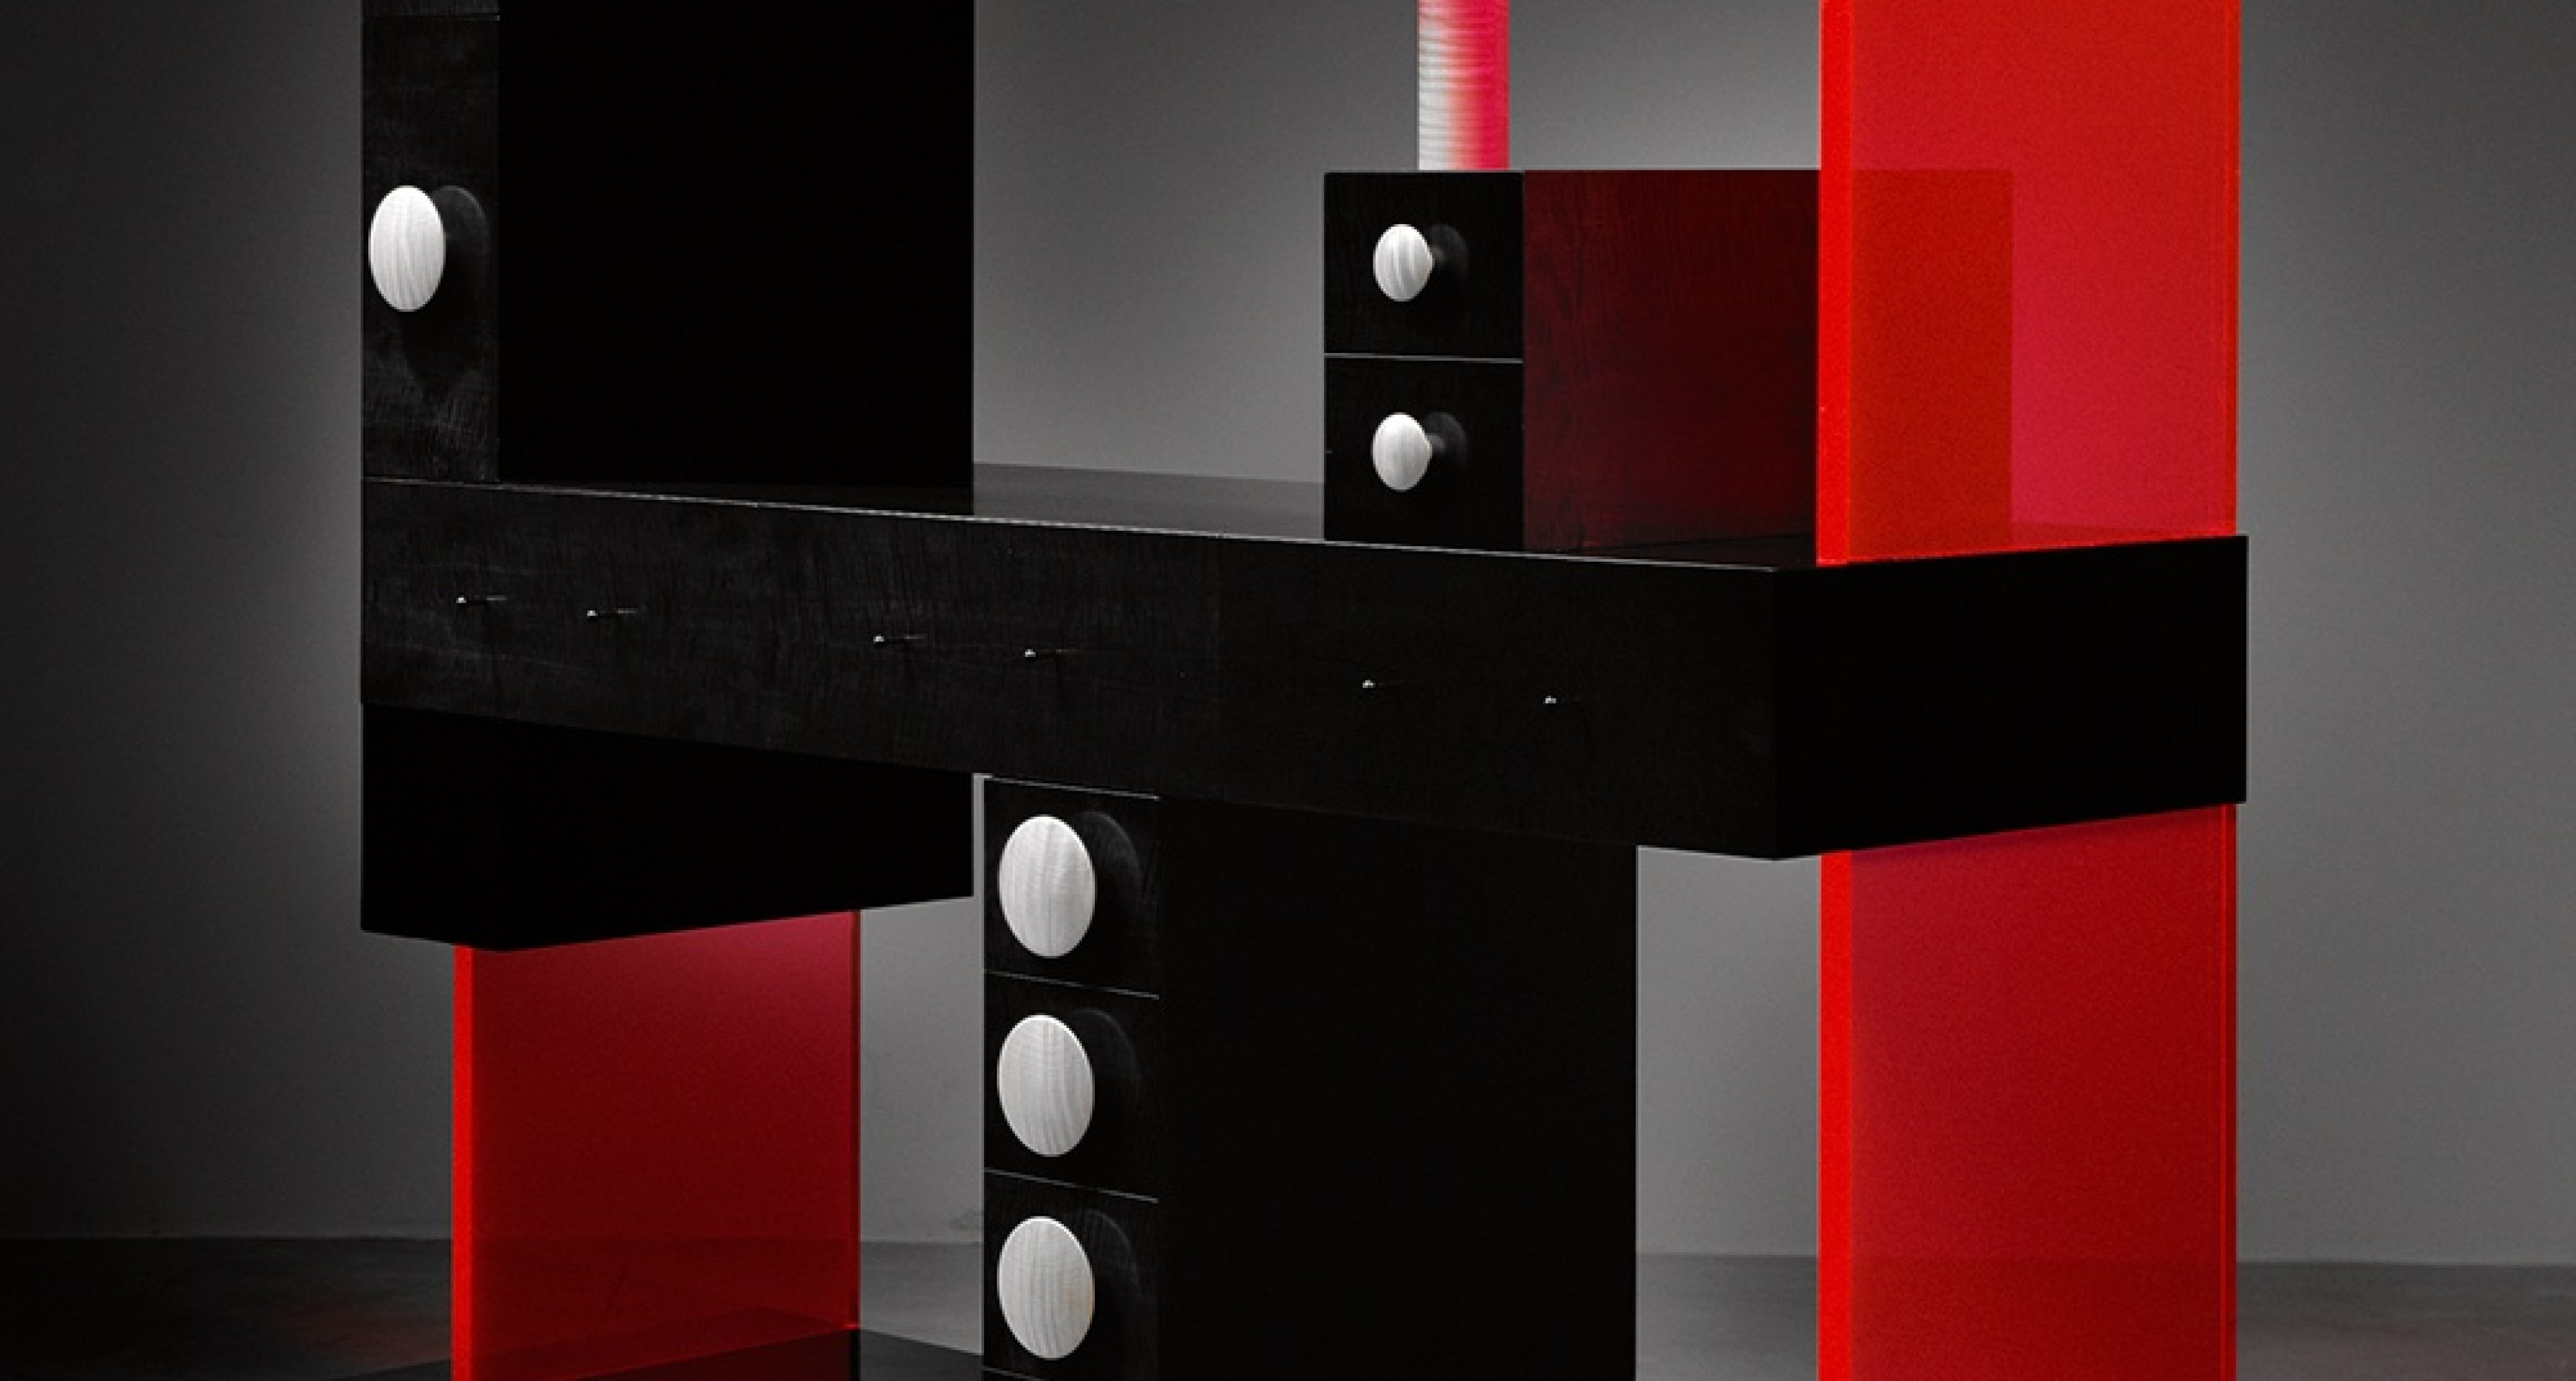 Ettore Sottsass (Italian, 1917-2007) Cabinet No. 56 2003 Wood, ebonized pearwood veneer, acrylic 80 1/8 × 82 7/8 × 23 5/8 in. (203.5 × 210.5 × 60 cm) Courtesy of The Gallery Mourmans © Studio Ettore Sottsass Srl